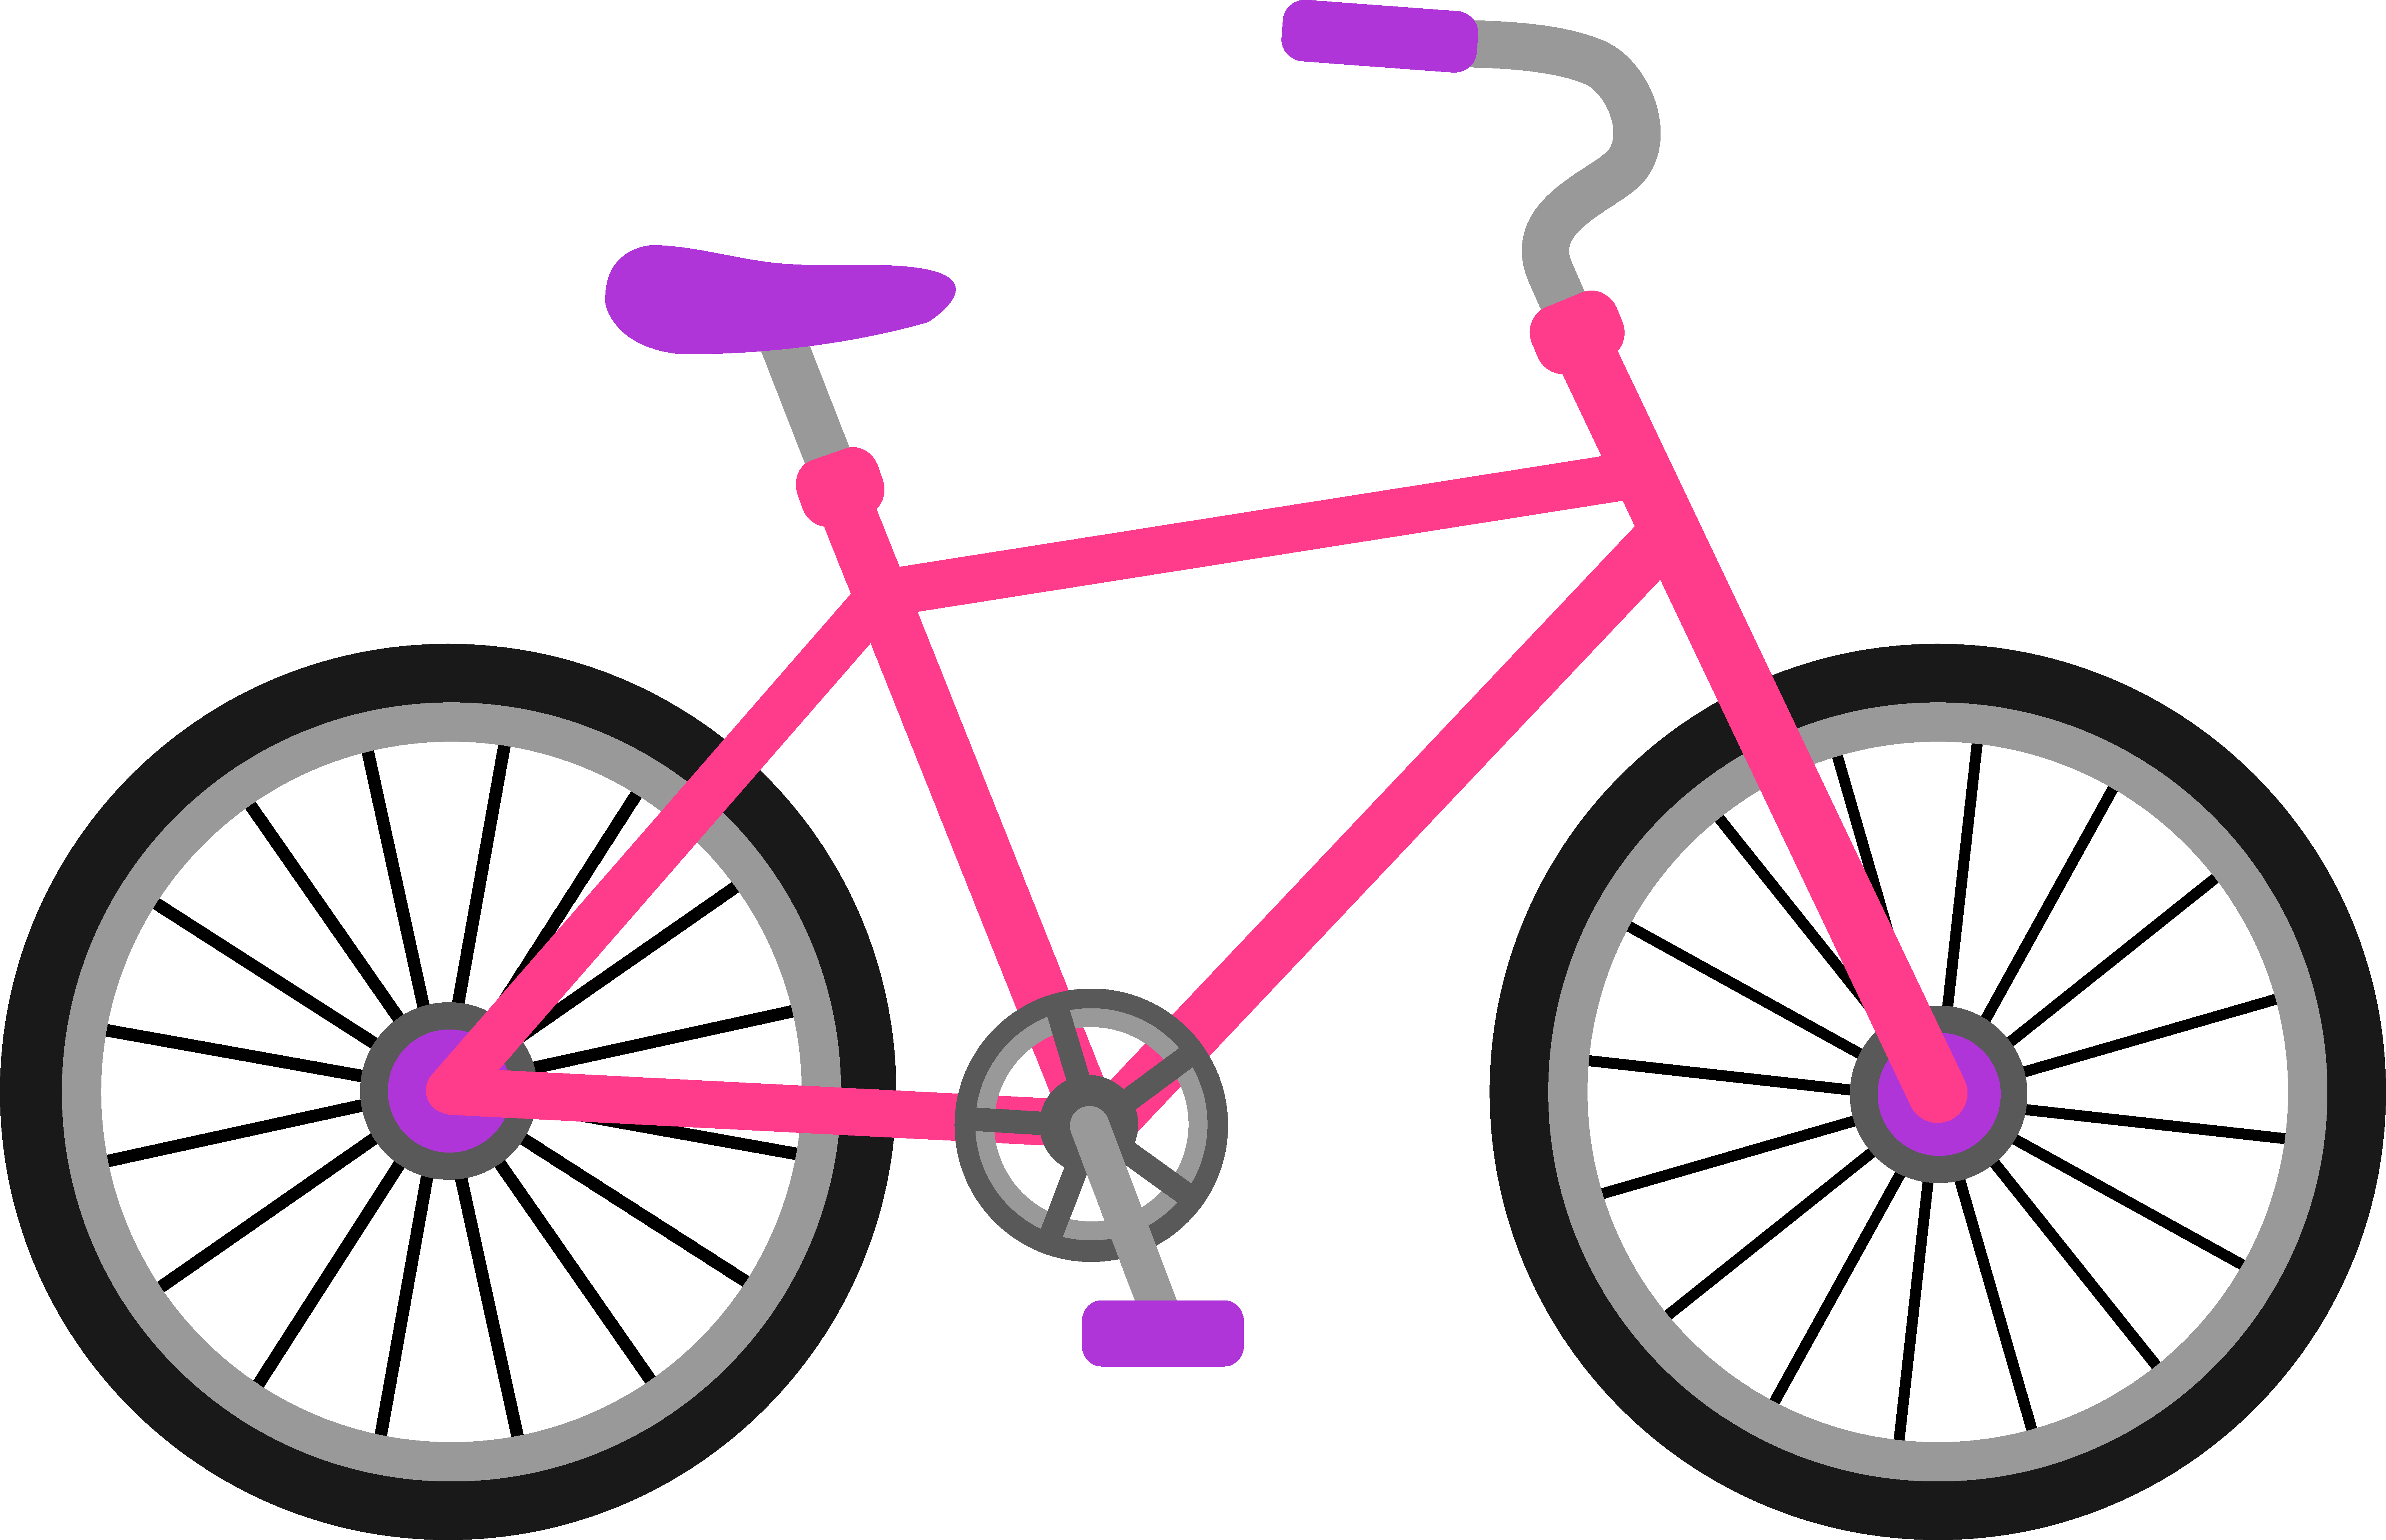 Bicycle panda free images. Cycle clipart child